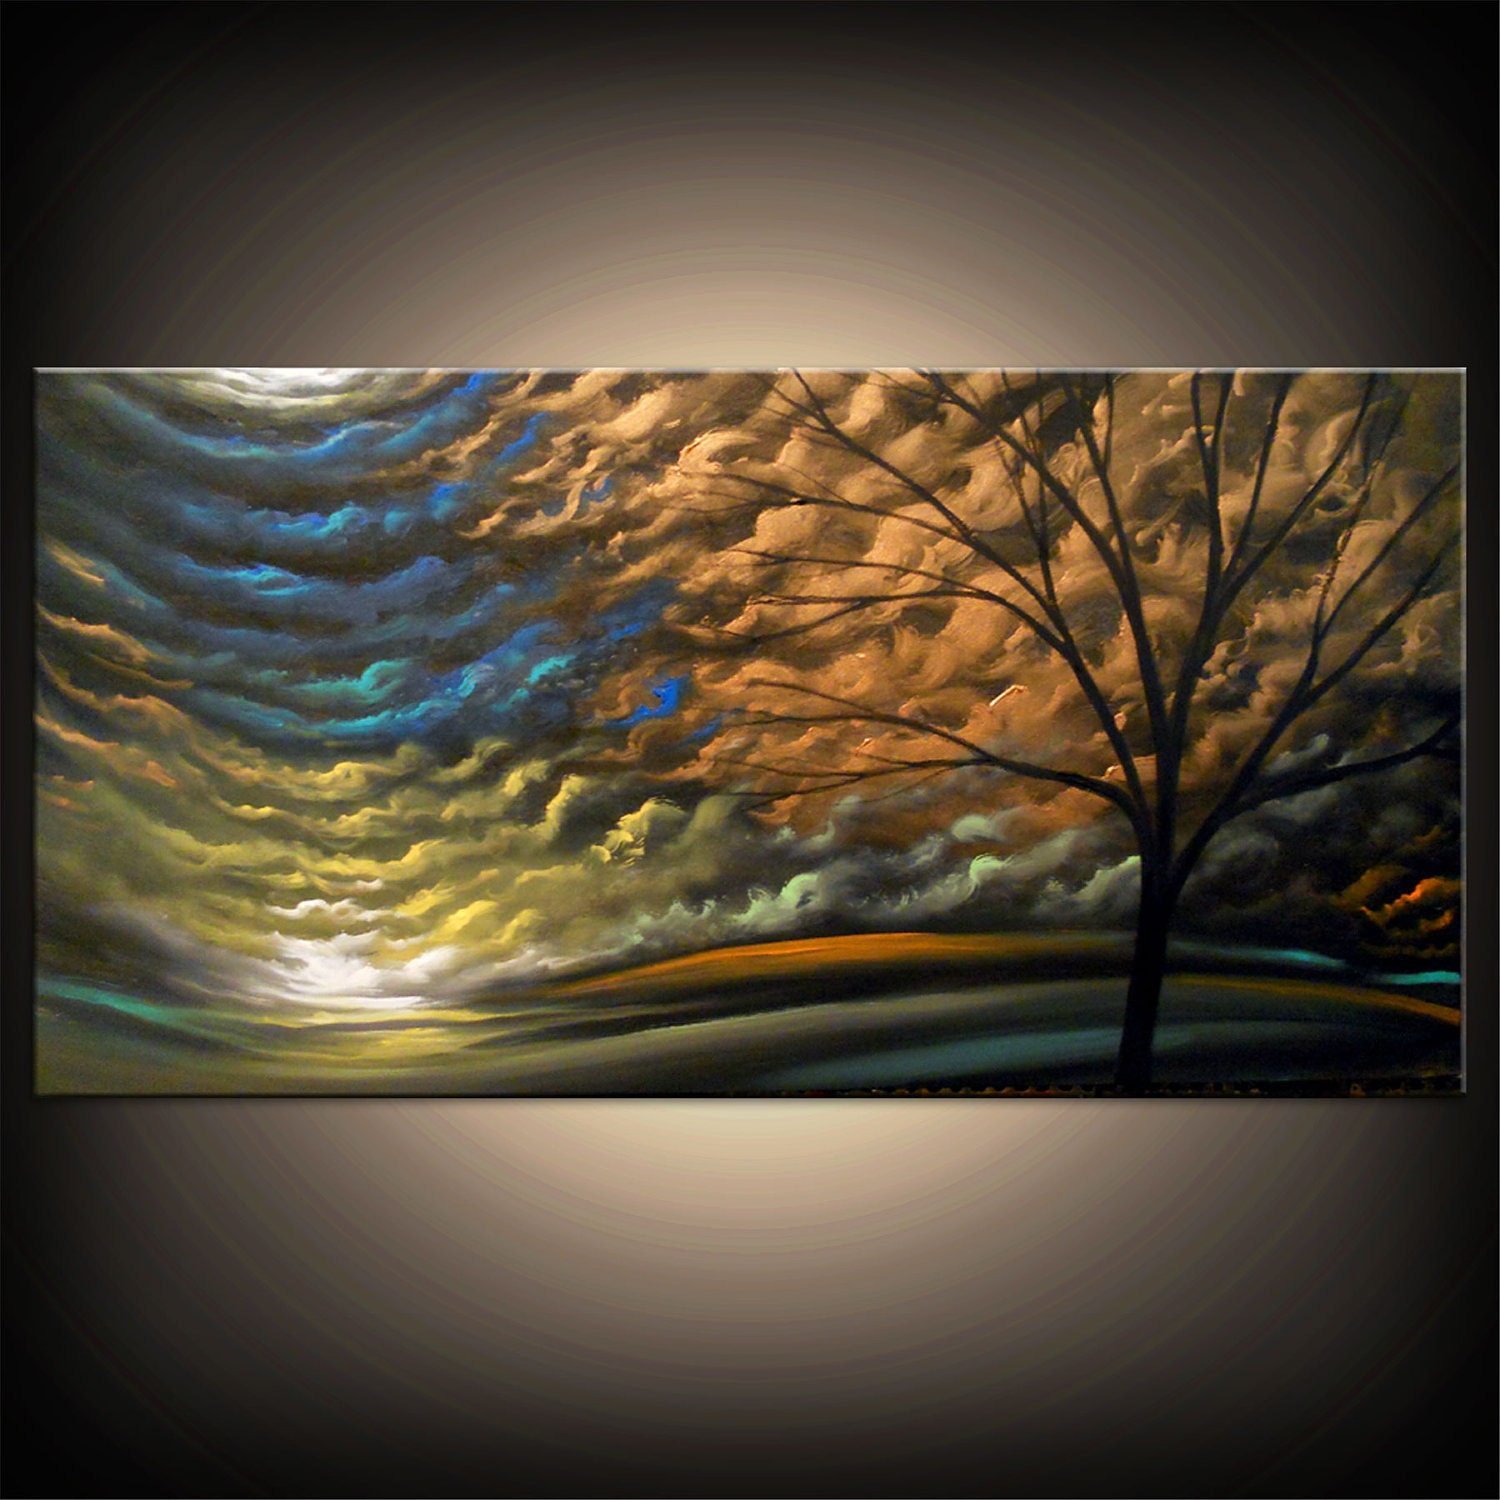 Abstract Metallic Silhouette Tree Painting Landscape Painting